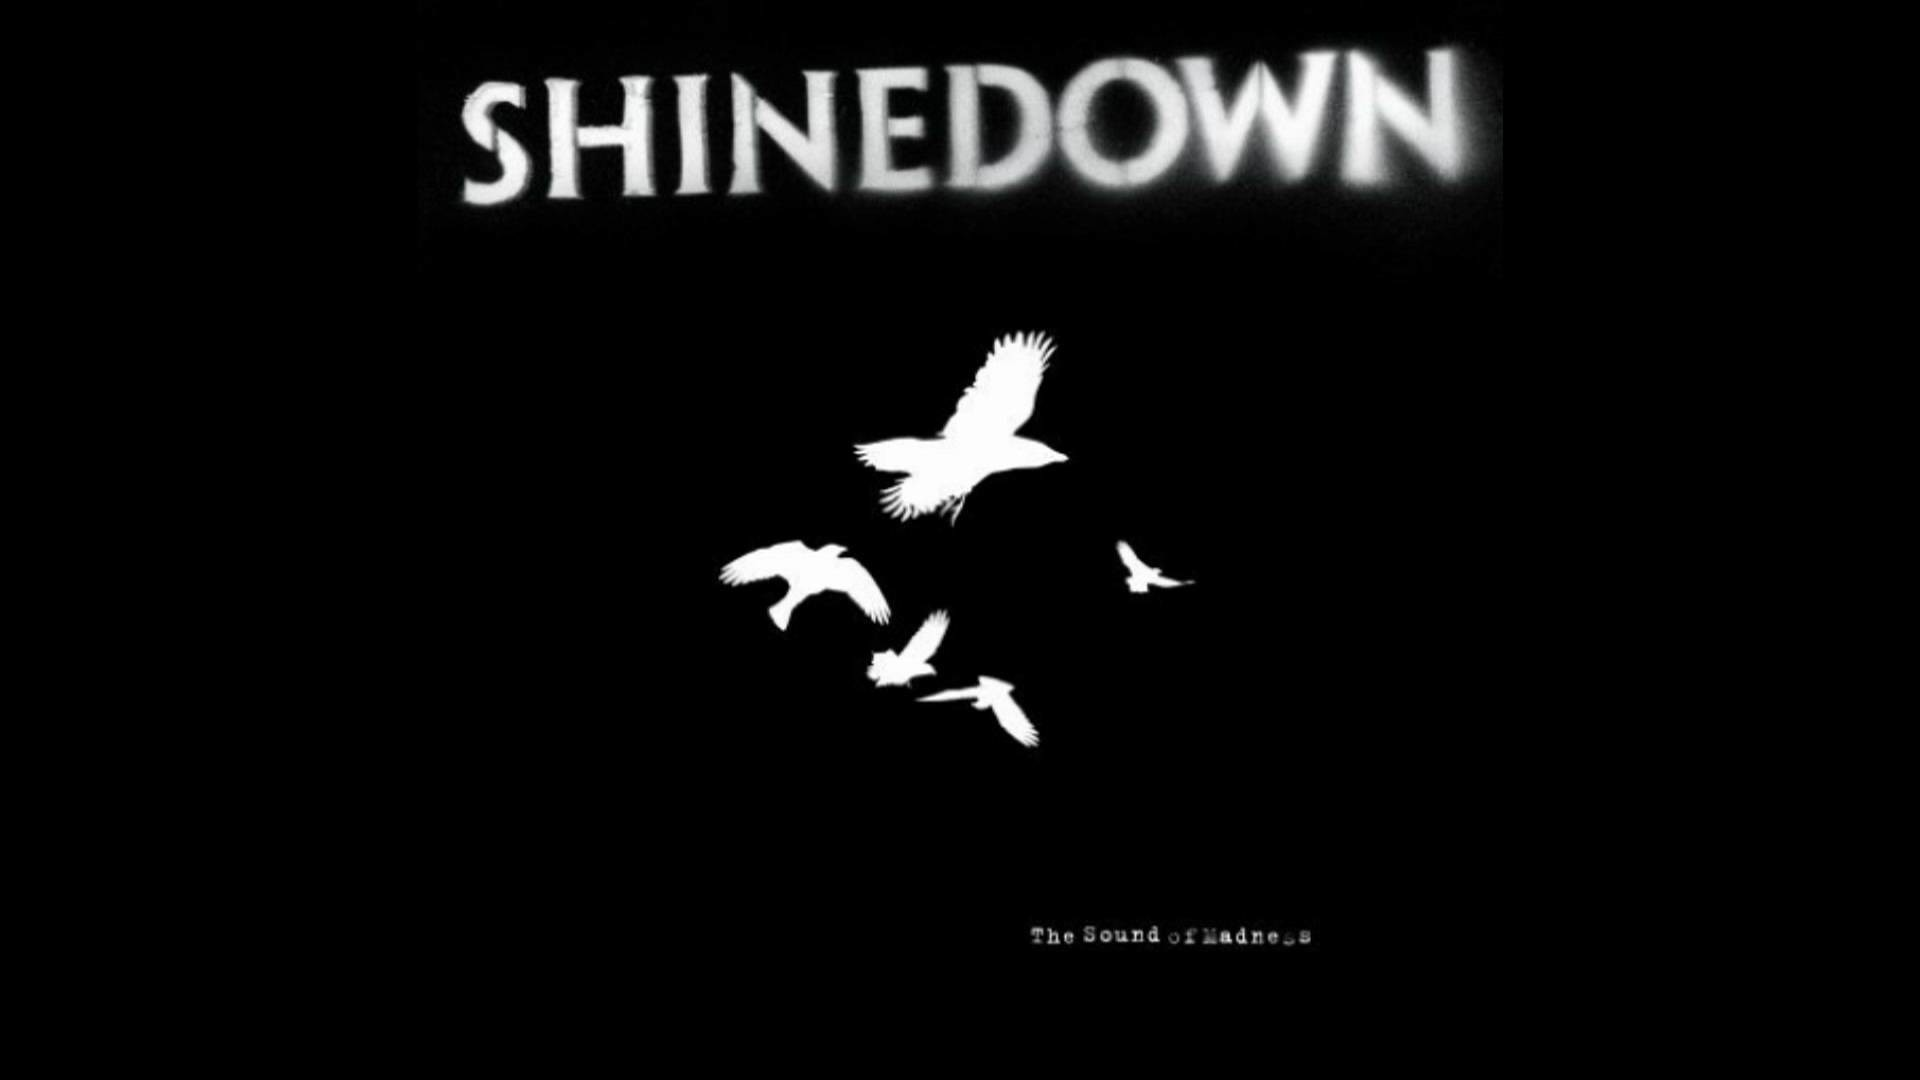 1920x1080  Shinedown Wallpapers - WallpaperPulse